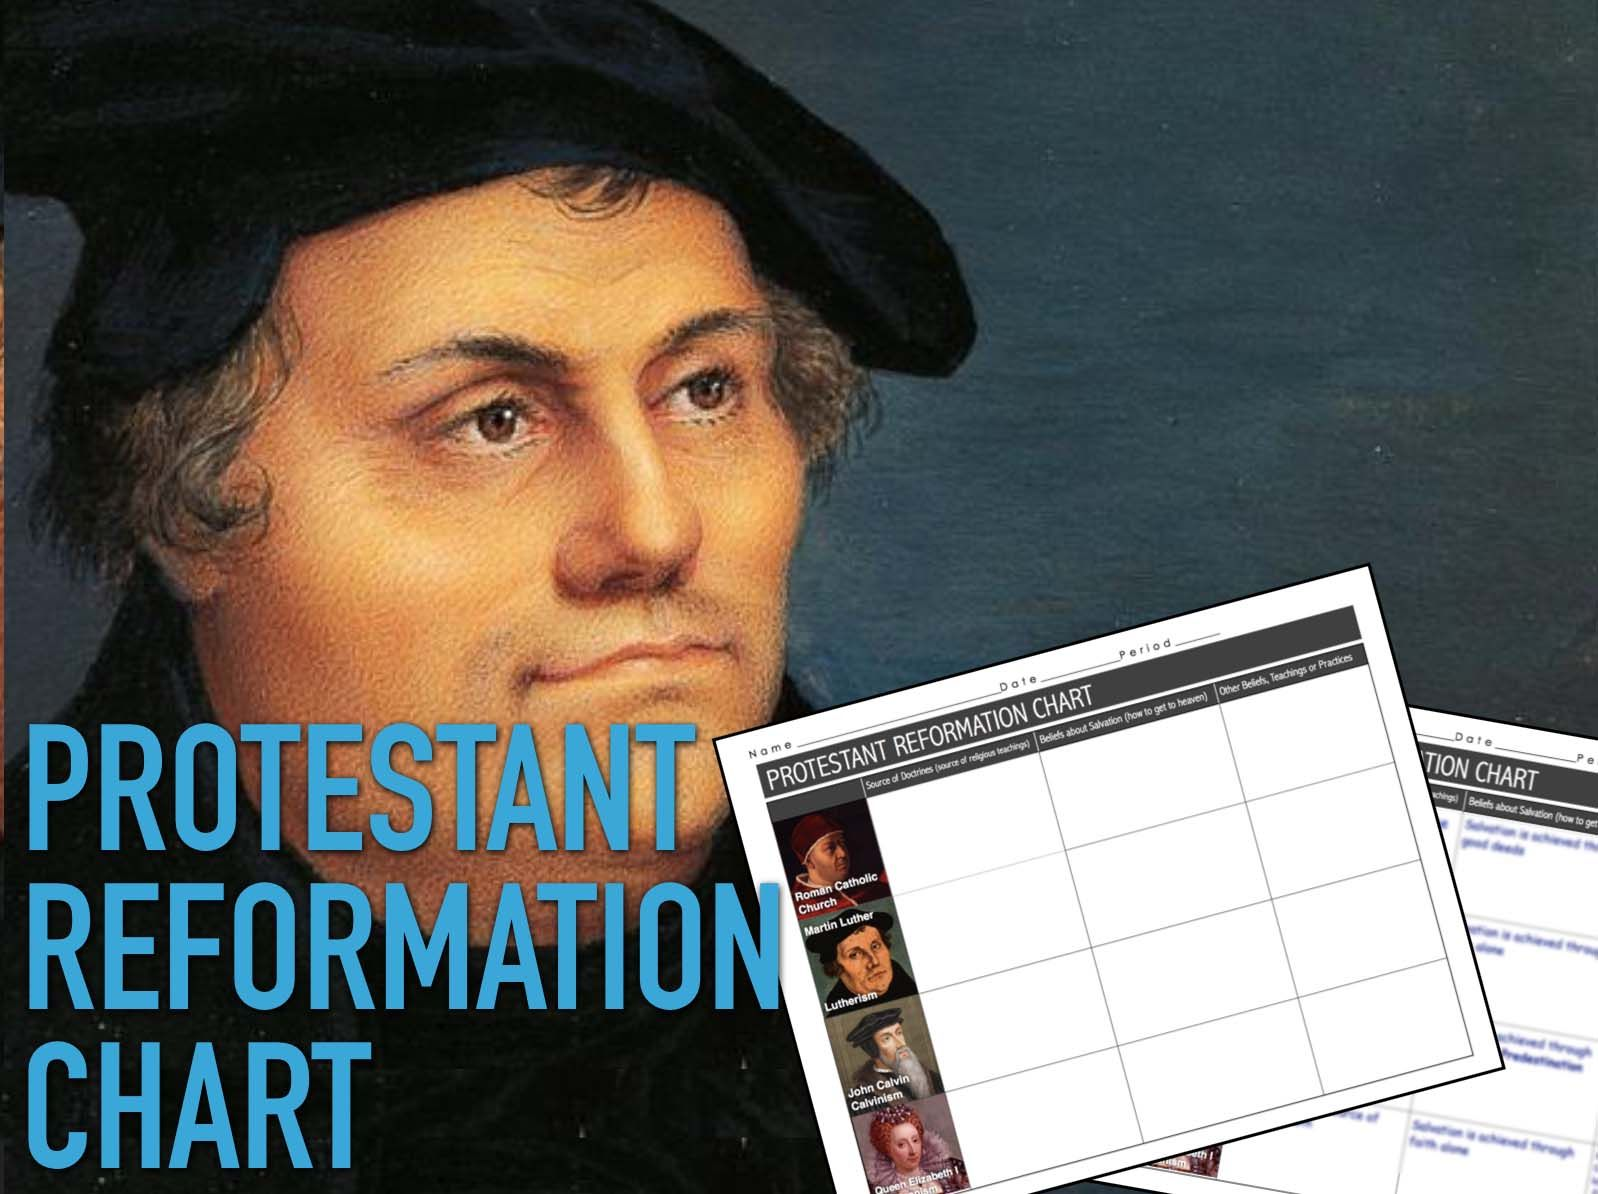 the history of protestant reformation We won't delve far into theology or matters of faith, but some basic church history  will help explain the protestant reformation: a major schism within christianity.